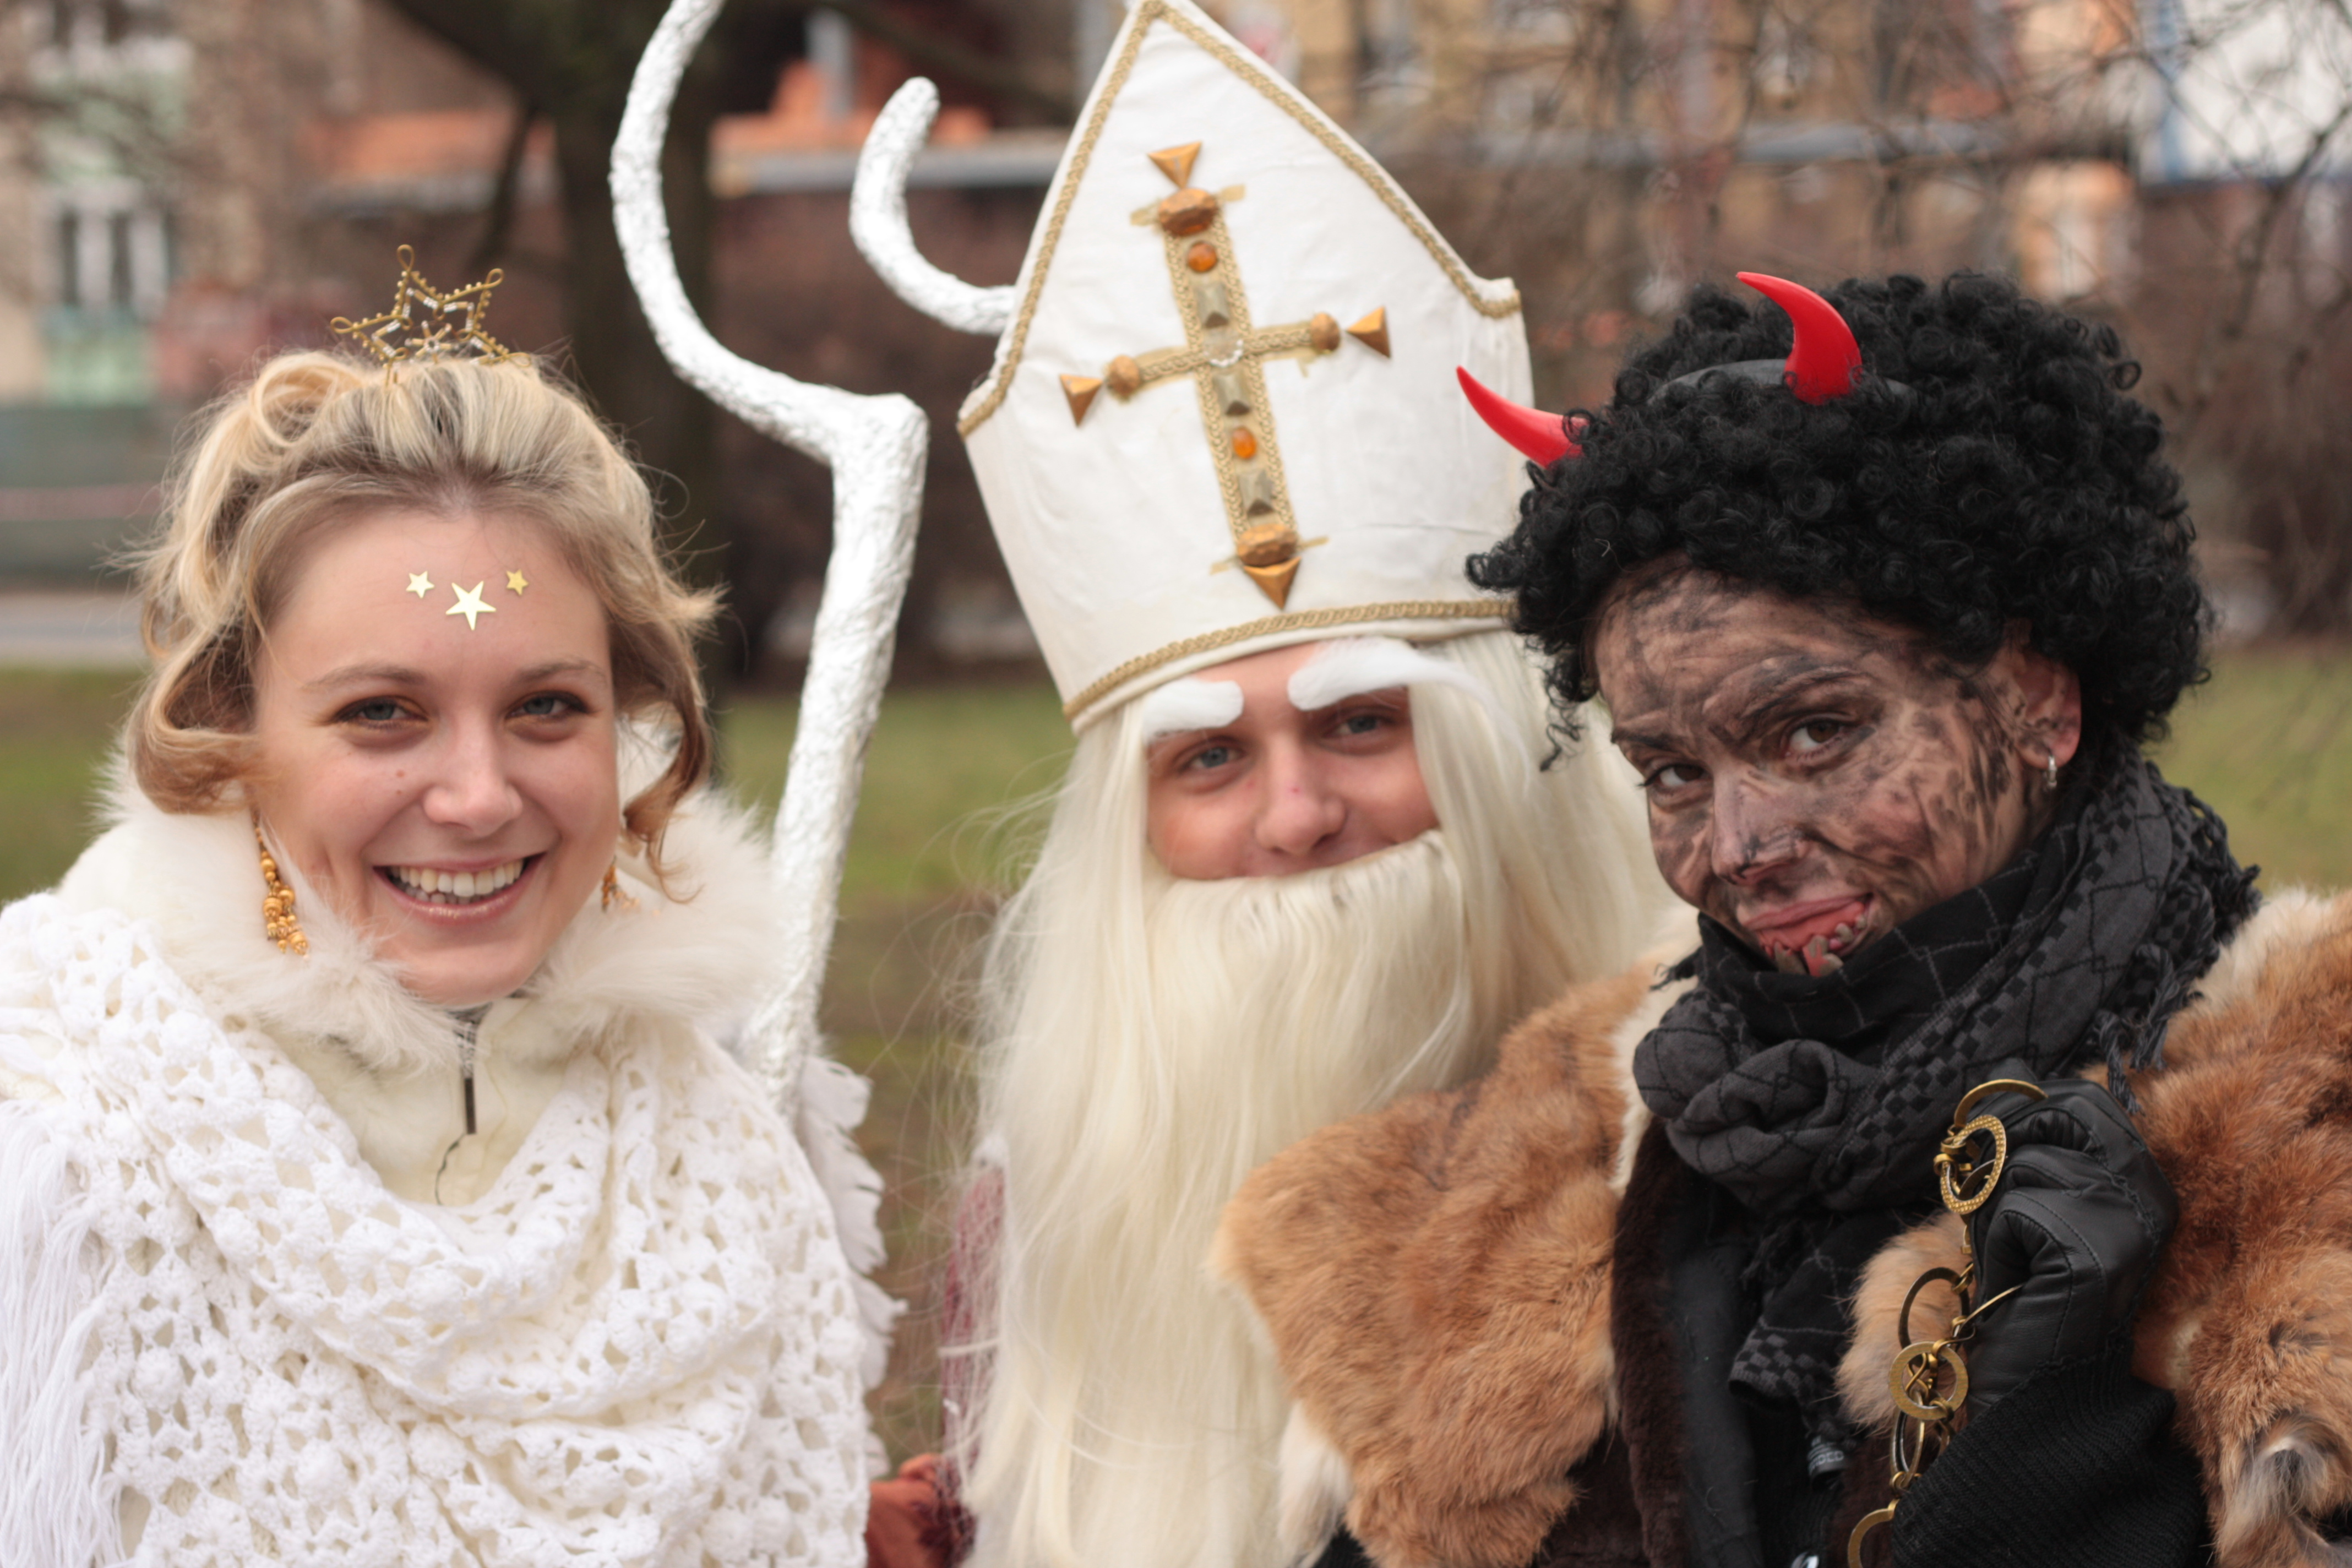 Saint Nicholas with an angel and a devil